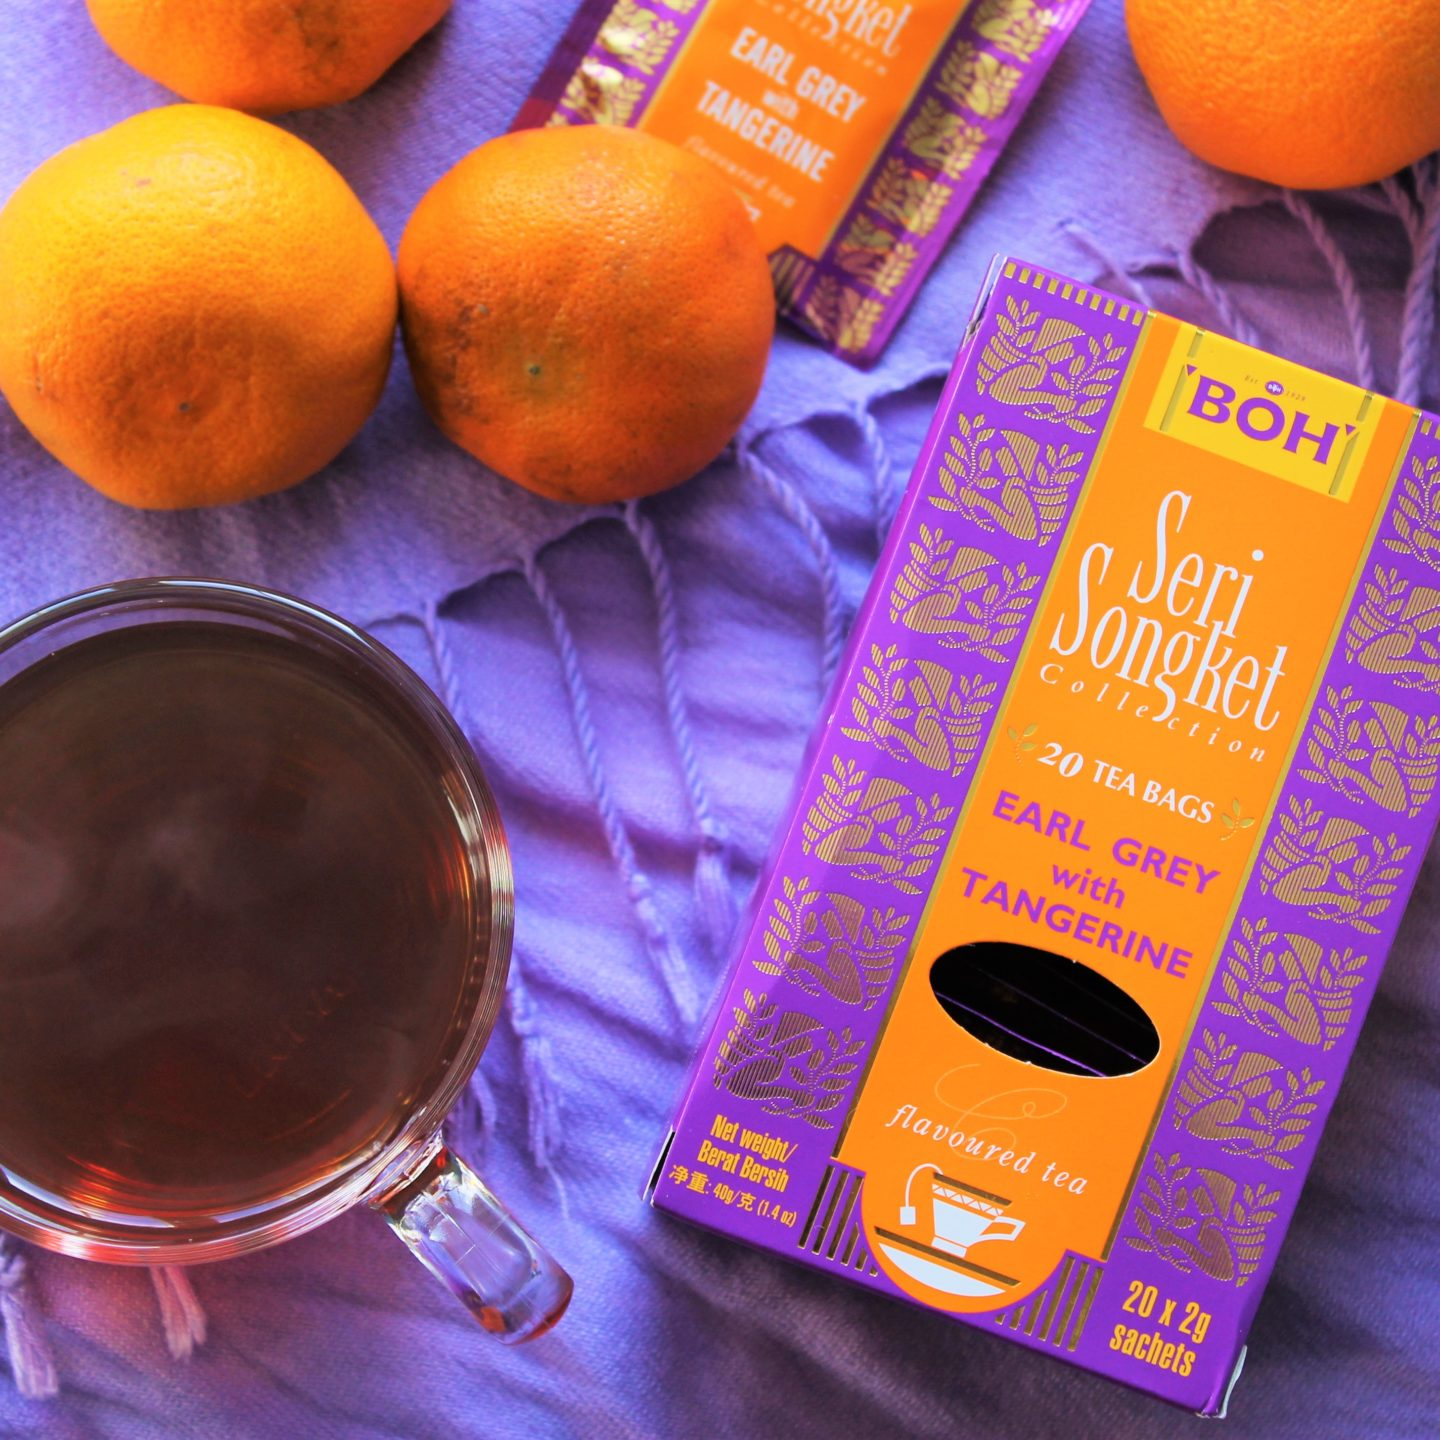 BOH Earl Grey with Tangerine Tea Review